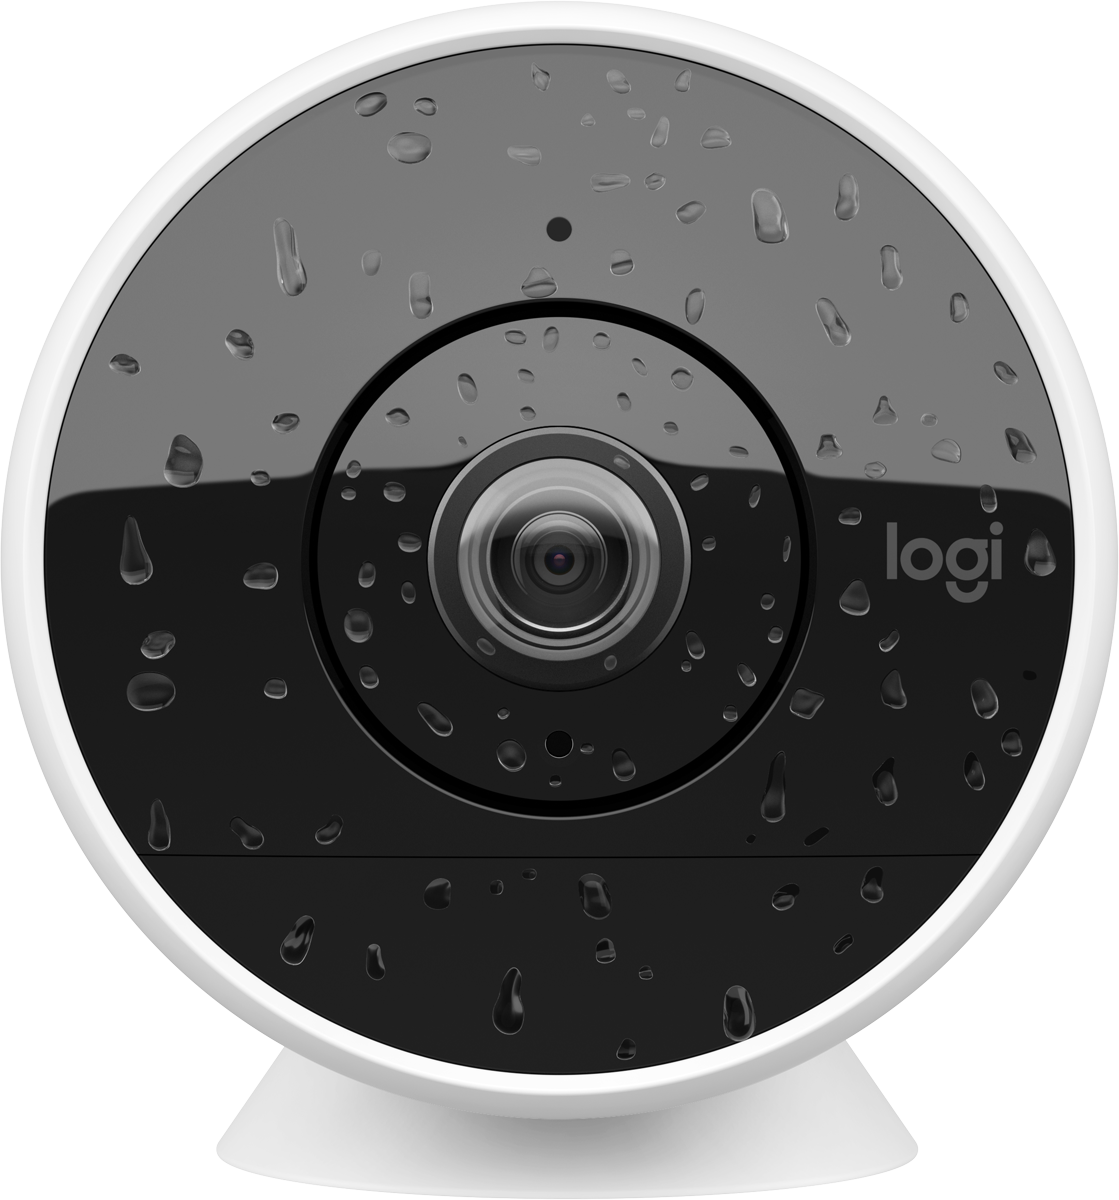 logitech circle 2 cam ra de surveillance sans fil blanc cam ra individuelles acheter. Black Bedroom Furniture Sets. Home Design Ideas